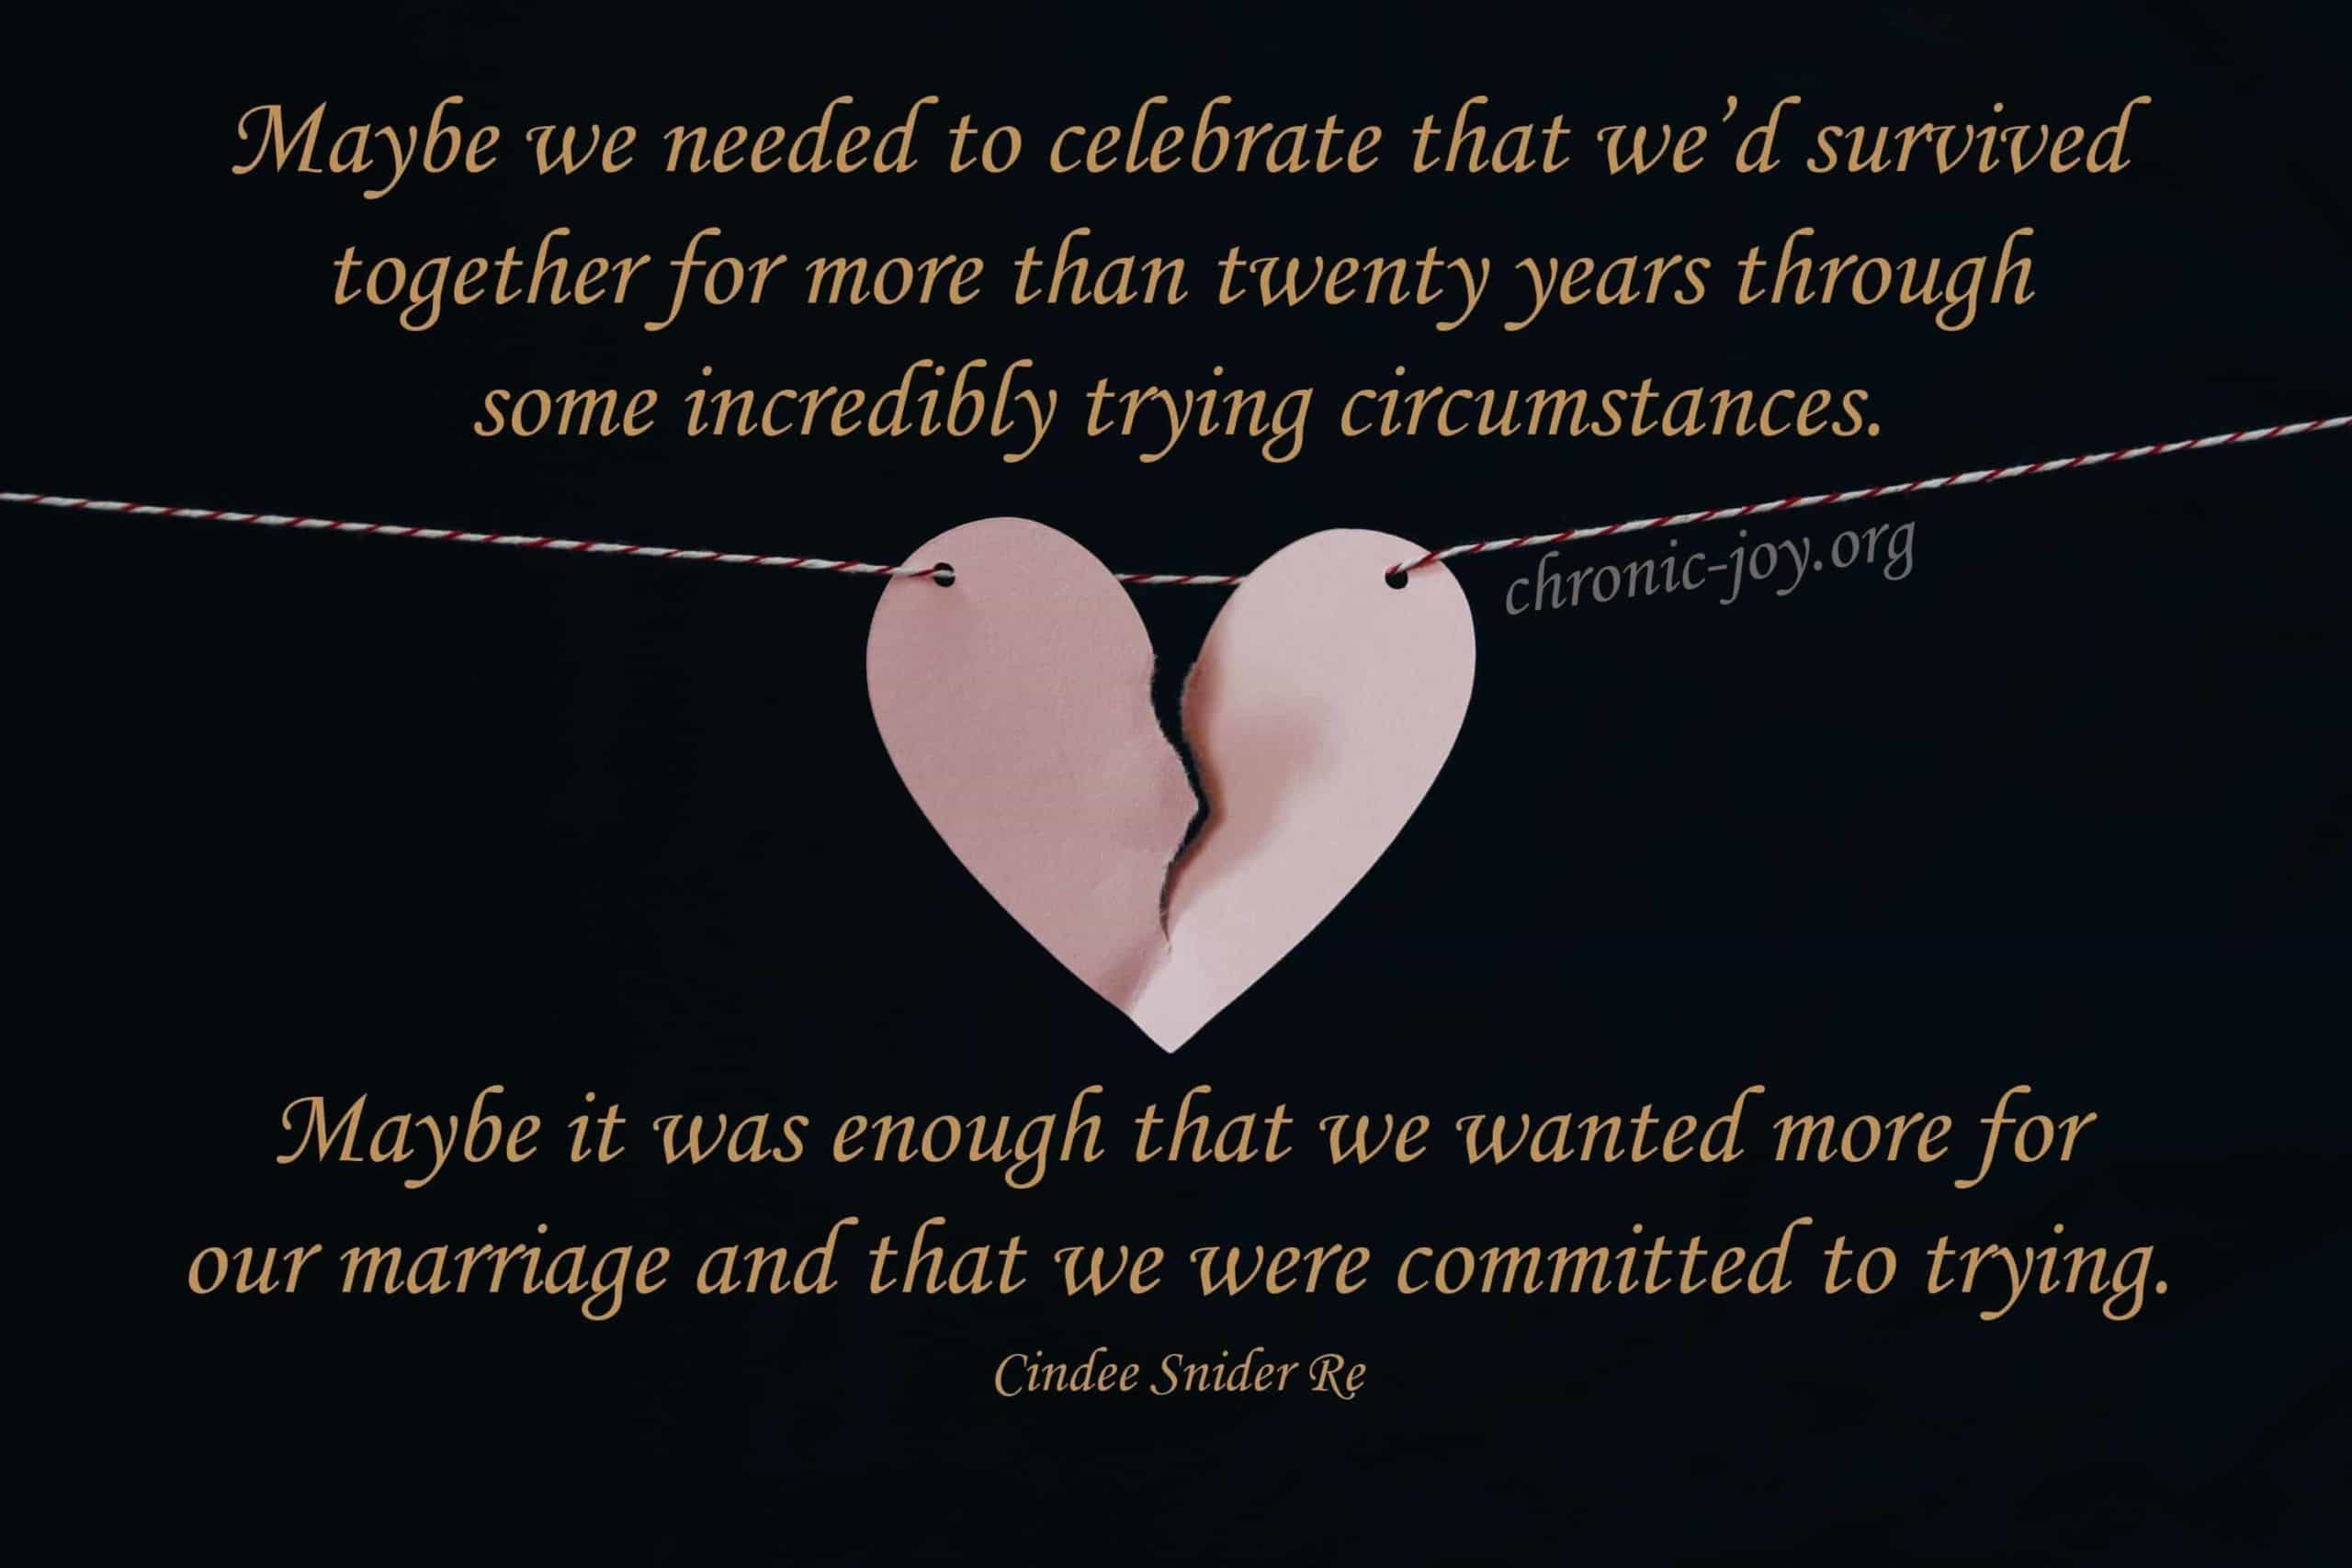 ...celebrate that we had survived...